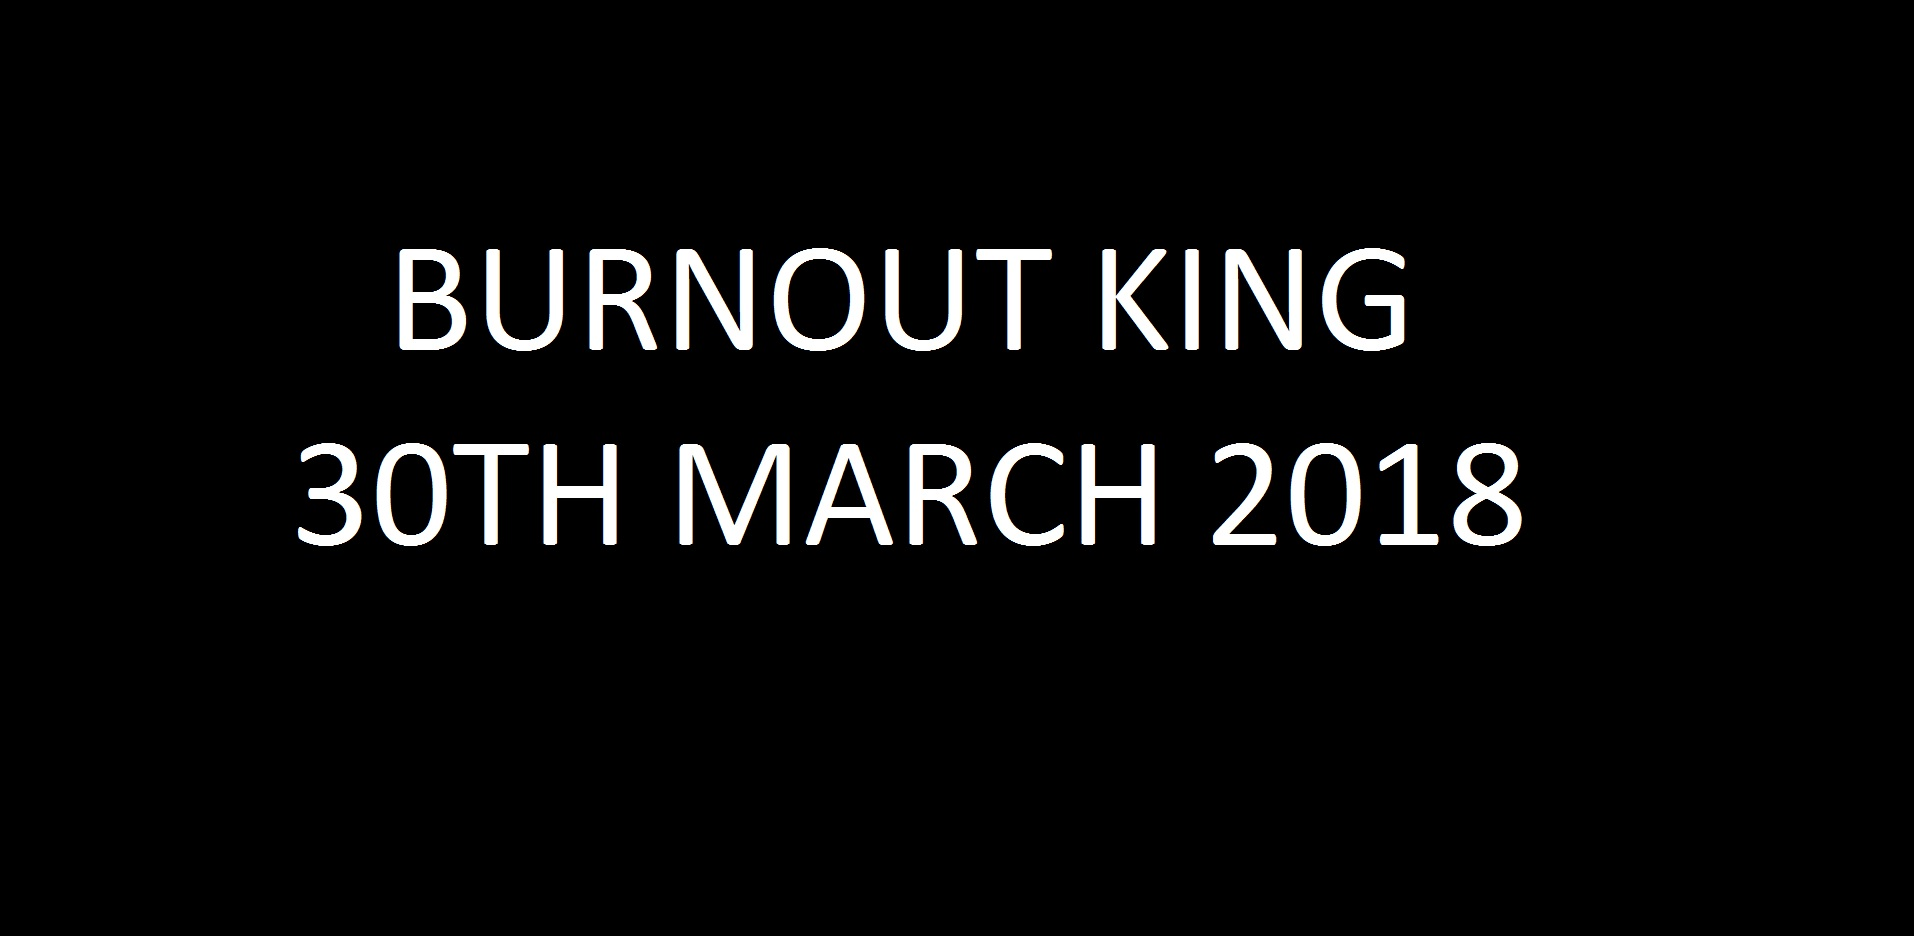 02. Burnout King 30th March 2018 Image